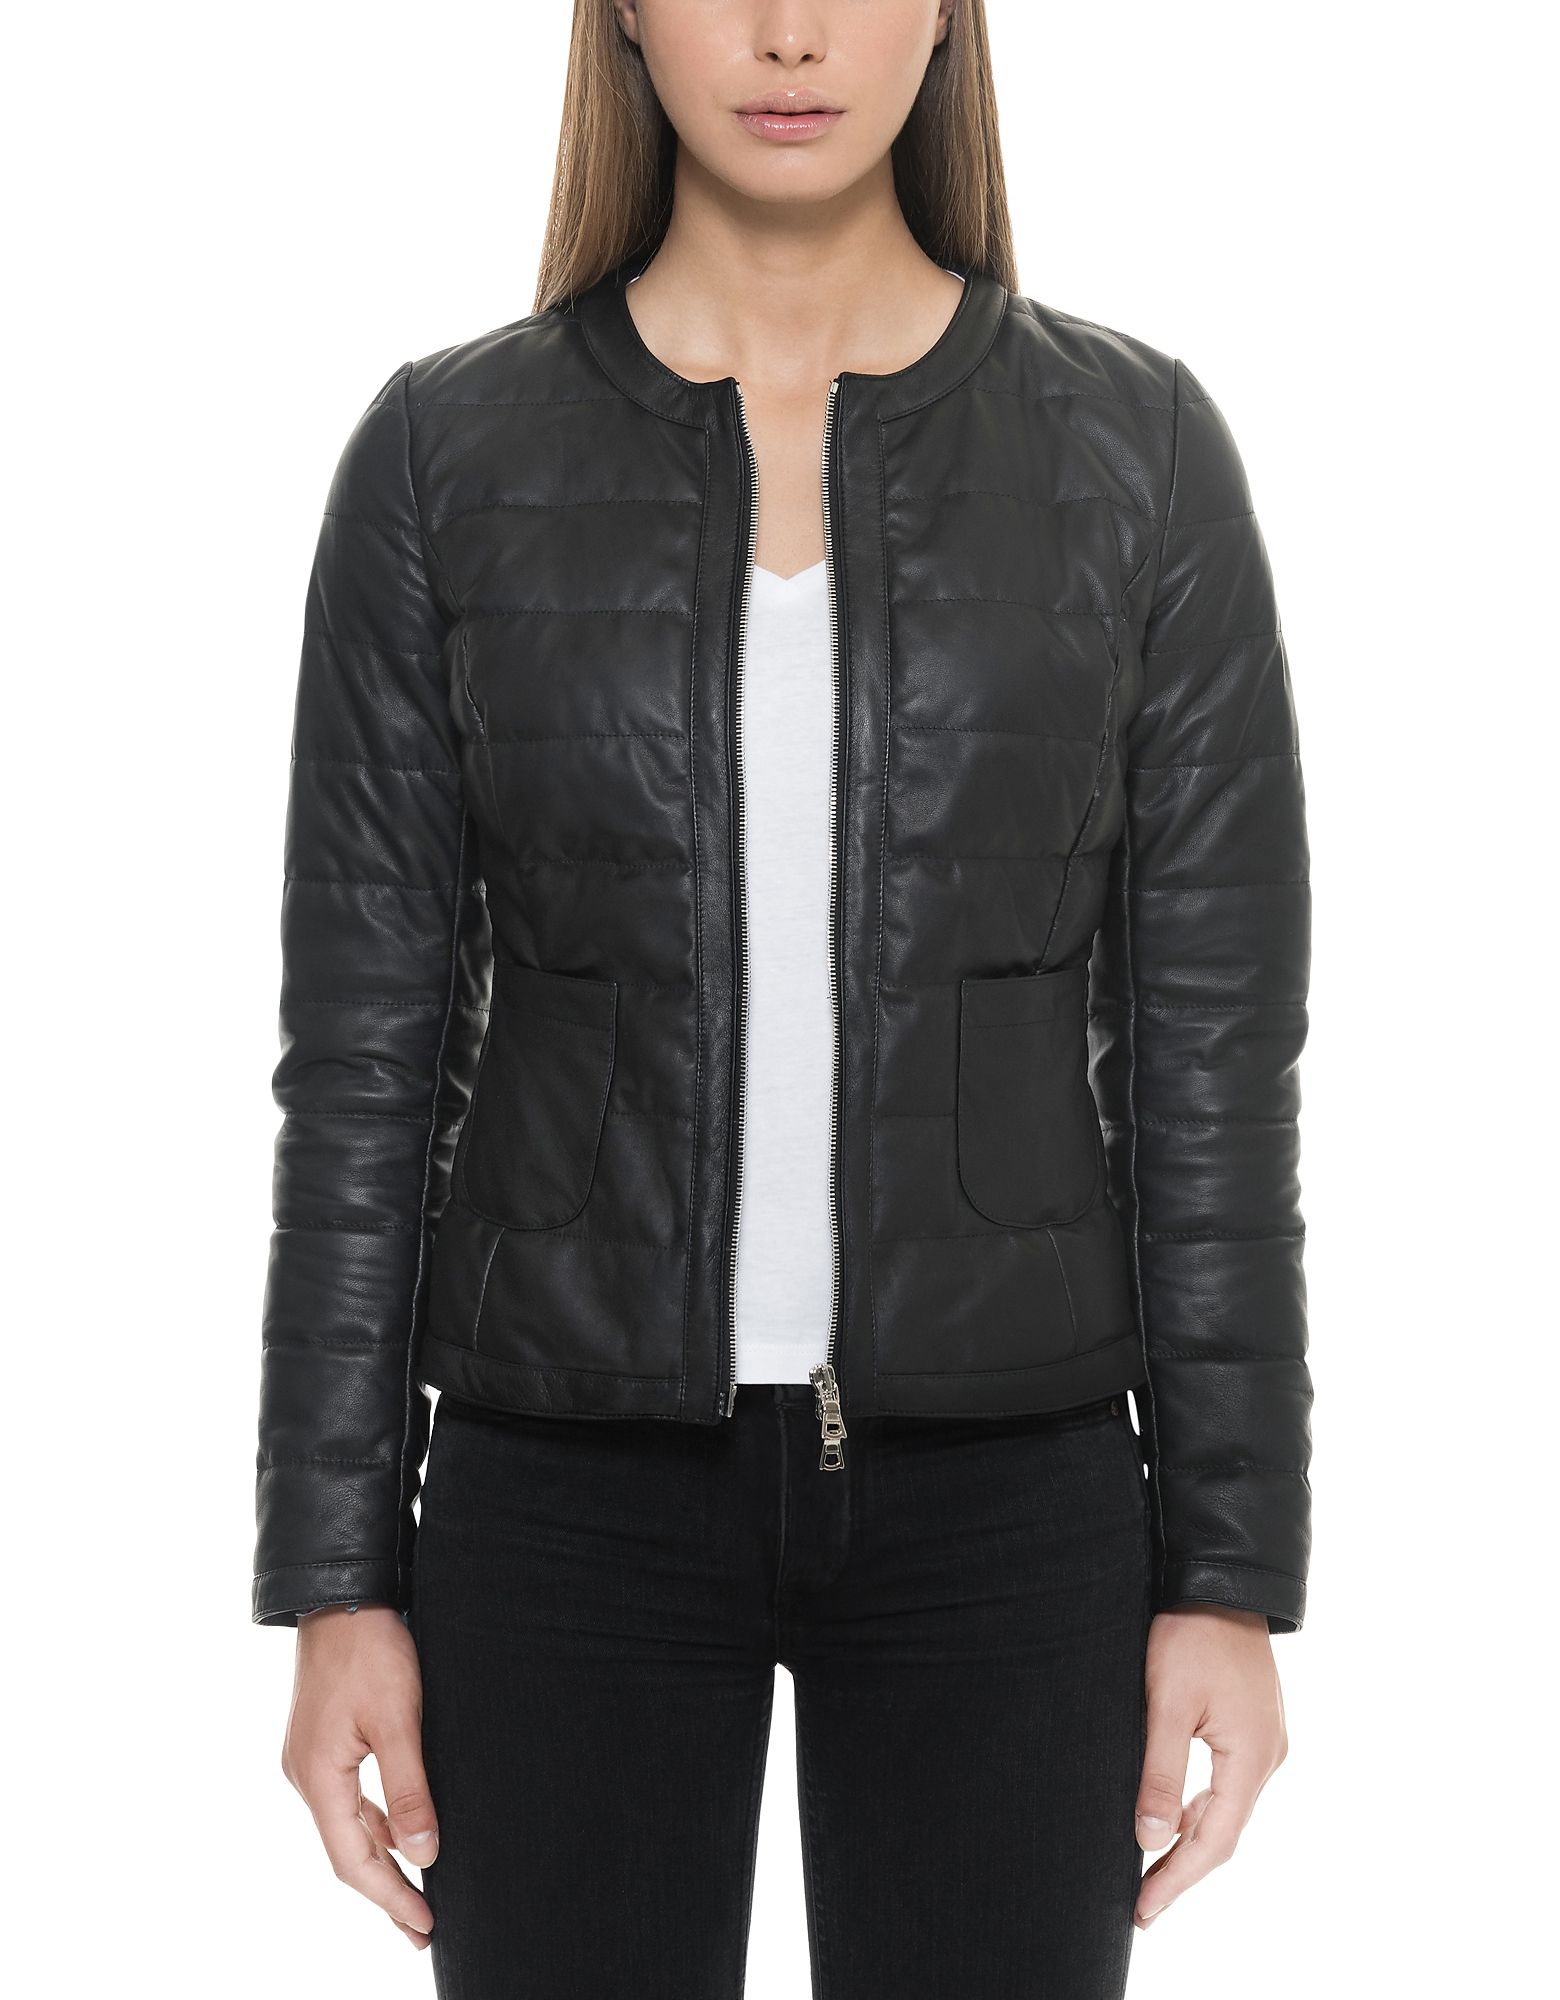 Forzieri Leather Jackets, Black Quilted Leather Women's Jacket